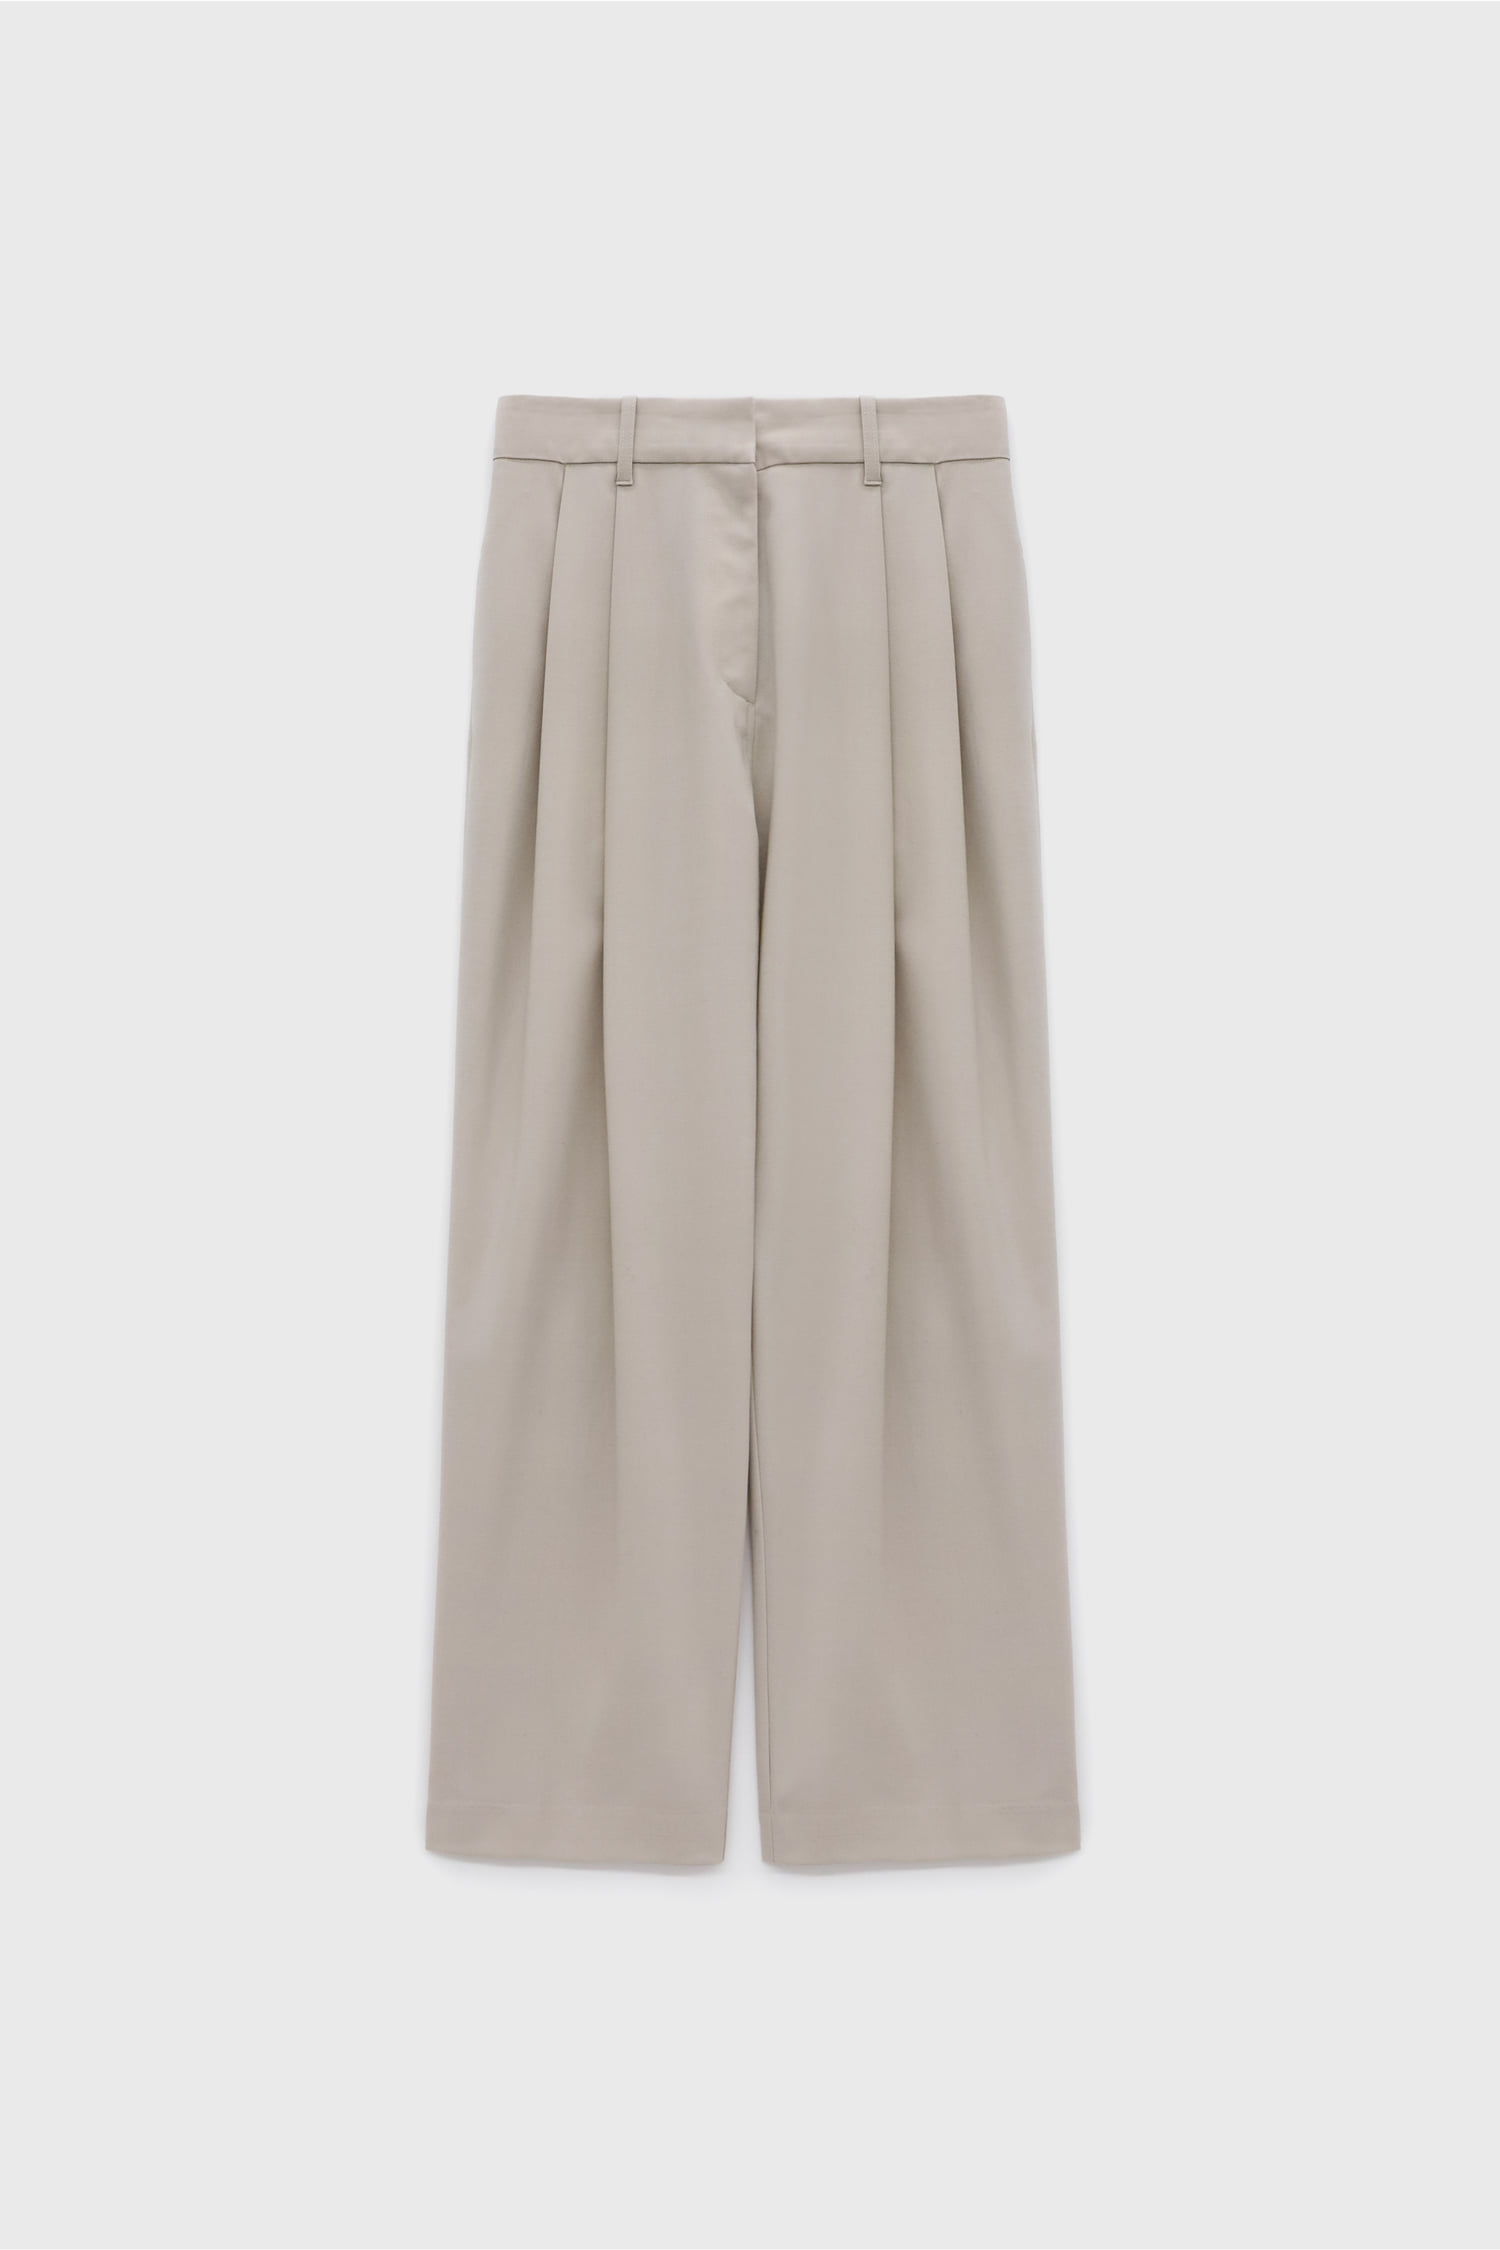 Two Pleats Pants